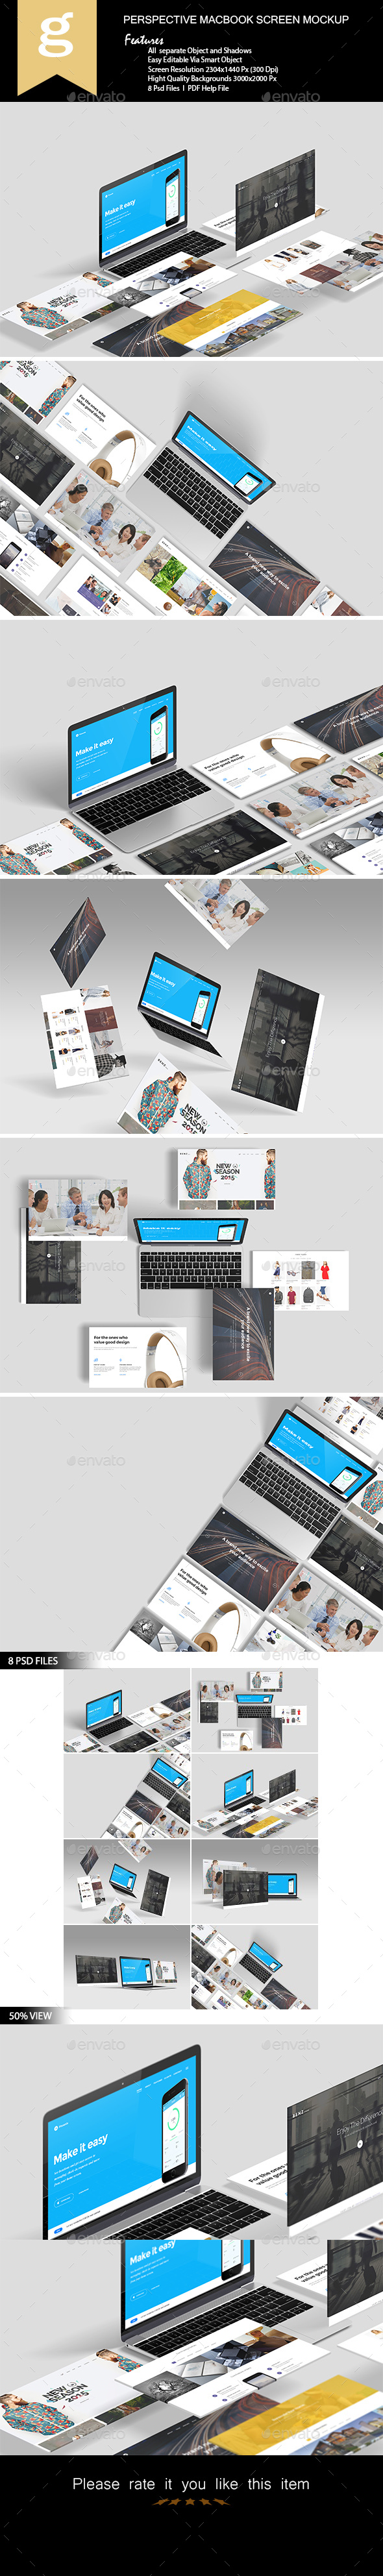 GraphicRiver Perspective Macbook Screen Mock-Up 21071639